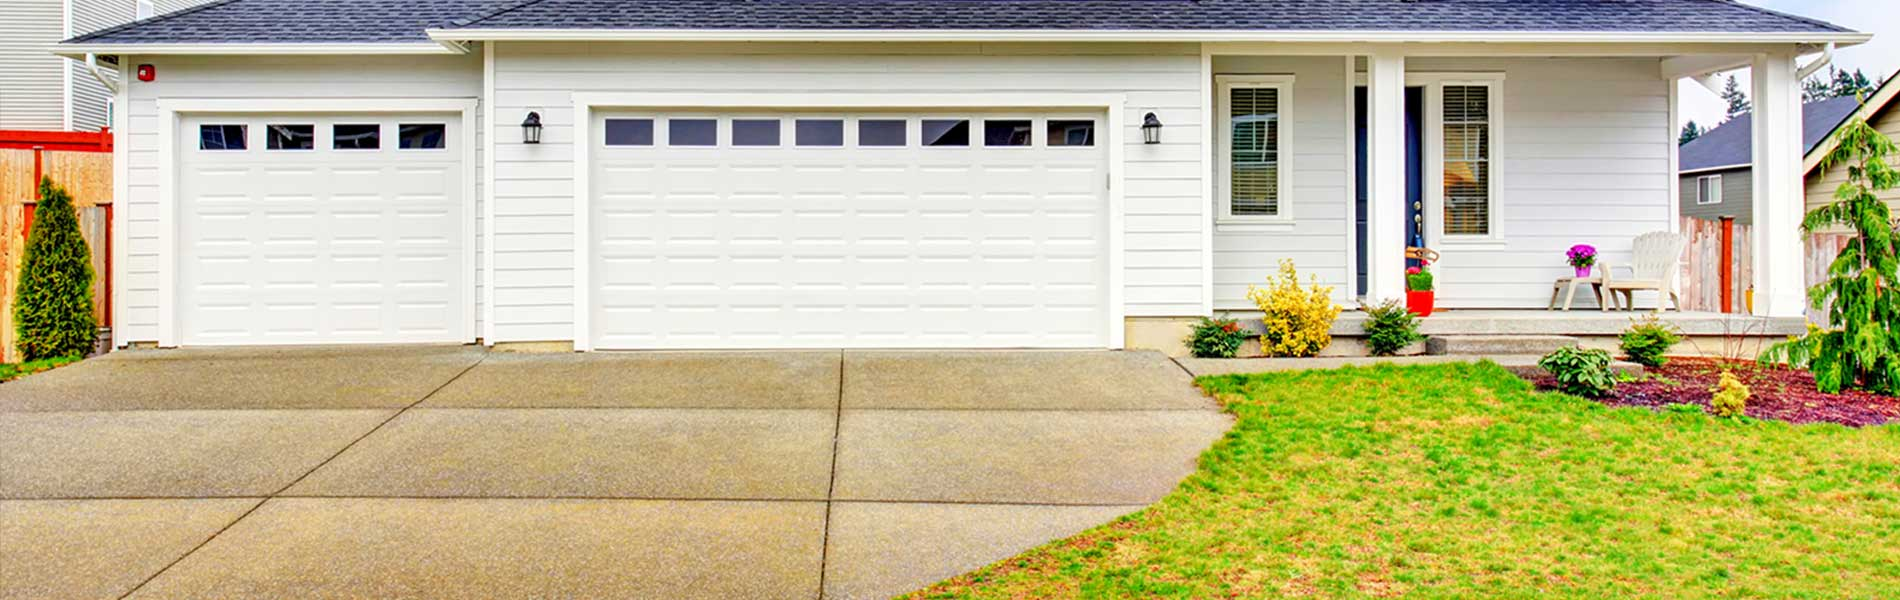 Garage Door 24 Hours Repairs, Parker, CO 720-334-8961